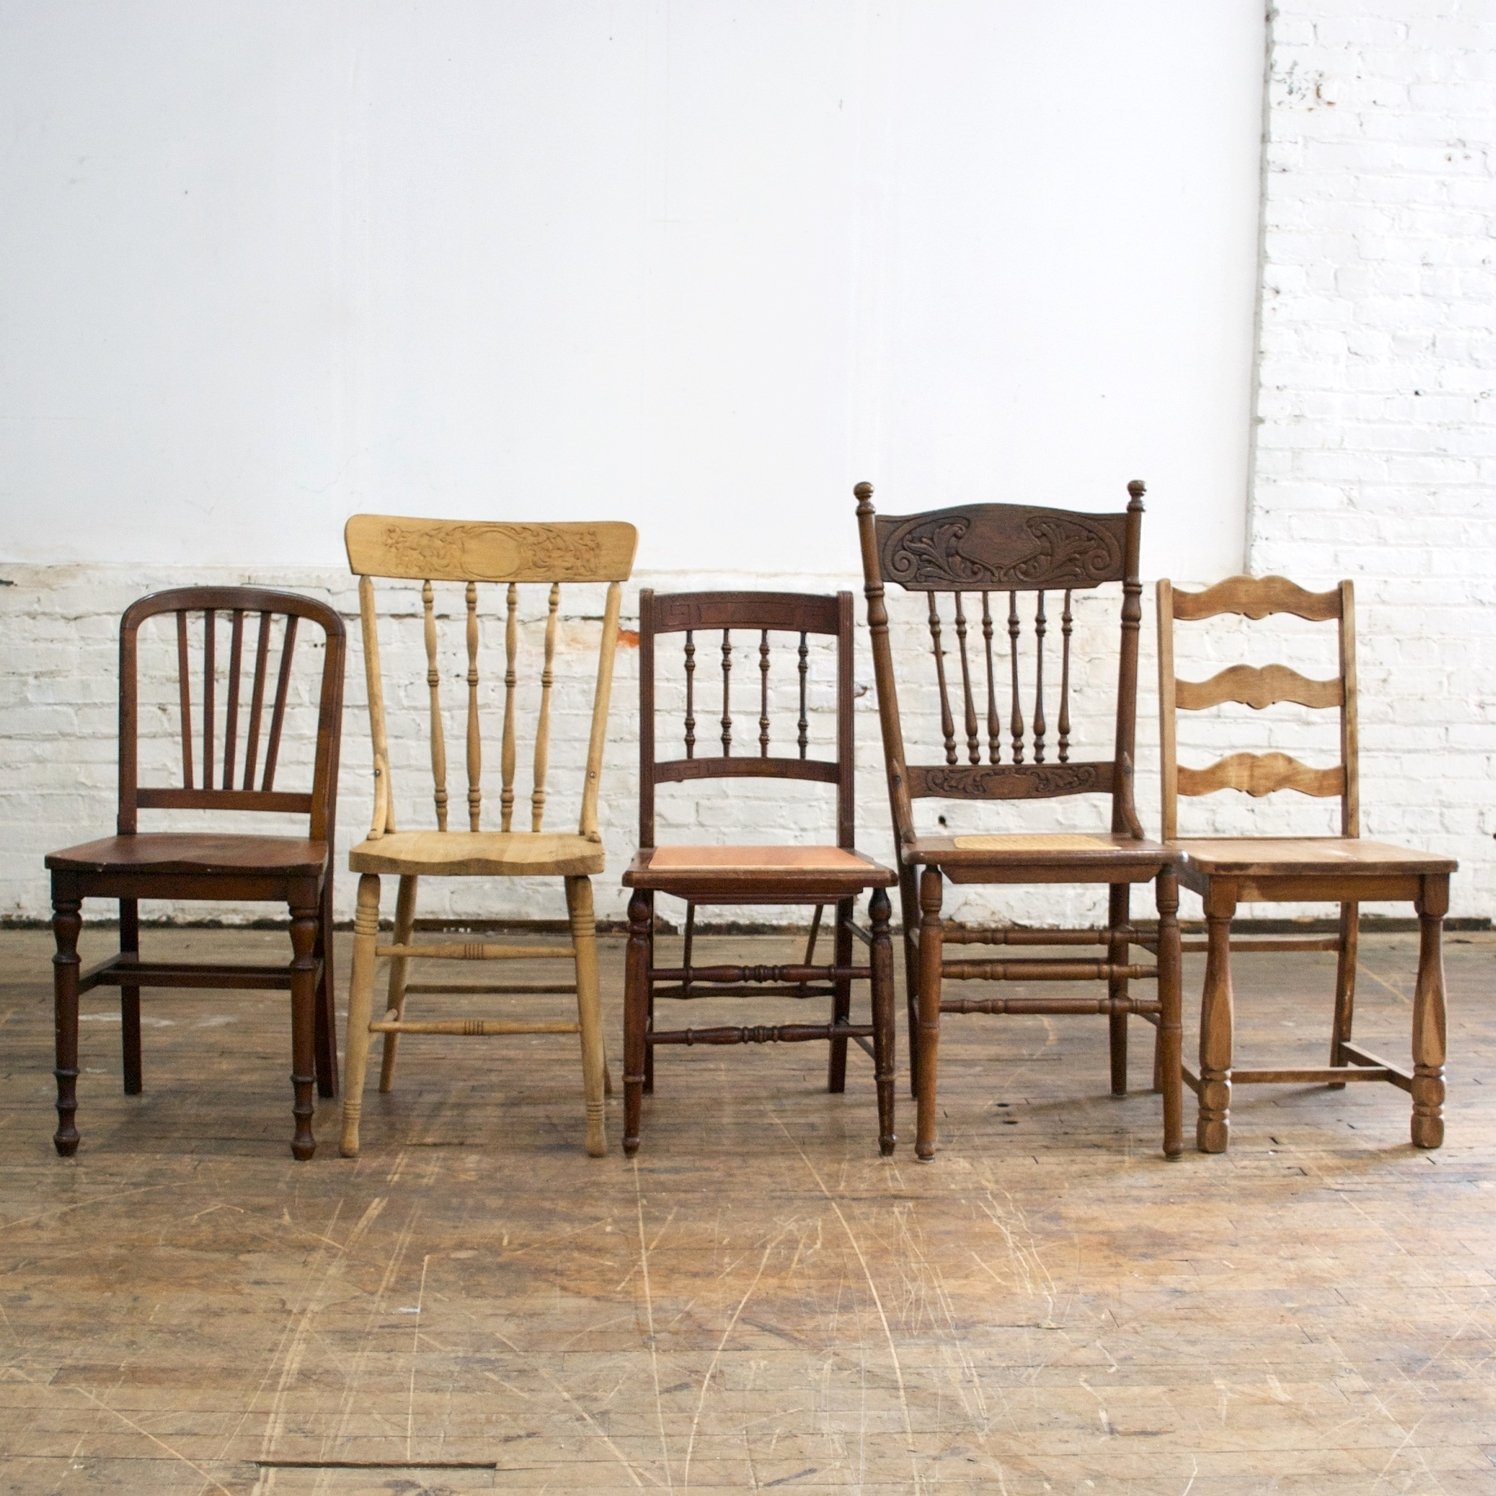 Mixed Natural Wood Chairs (160 available)    $8 each